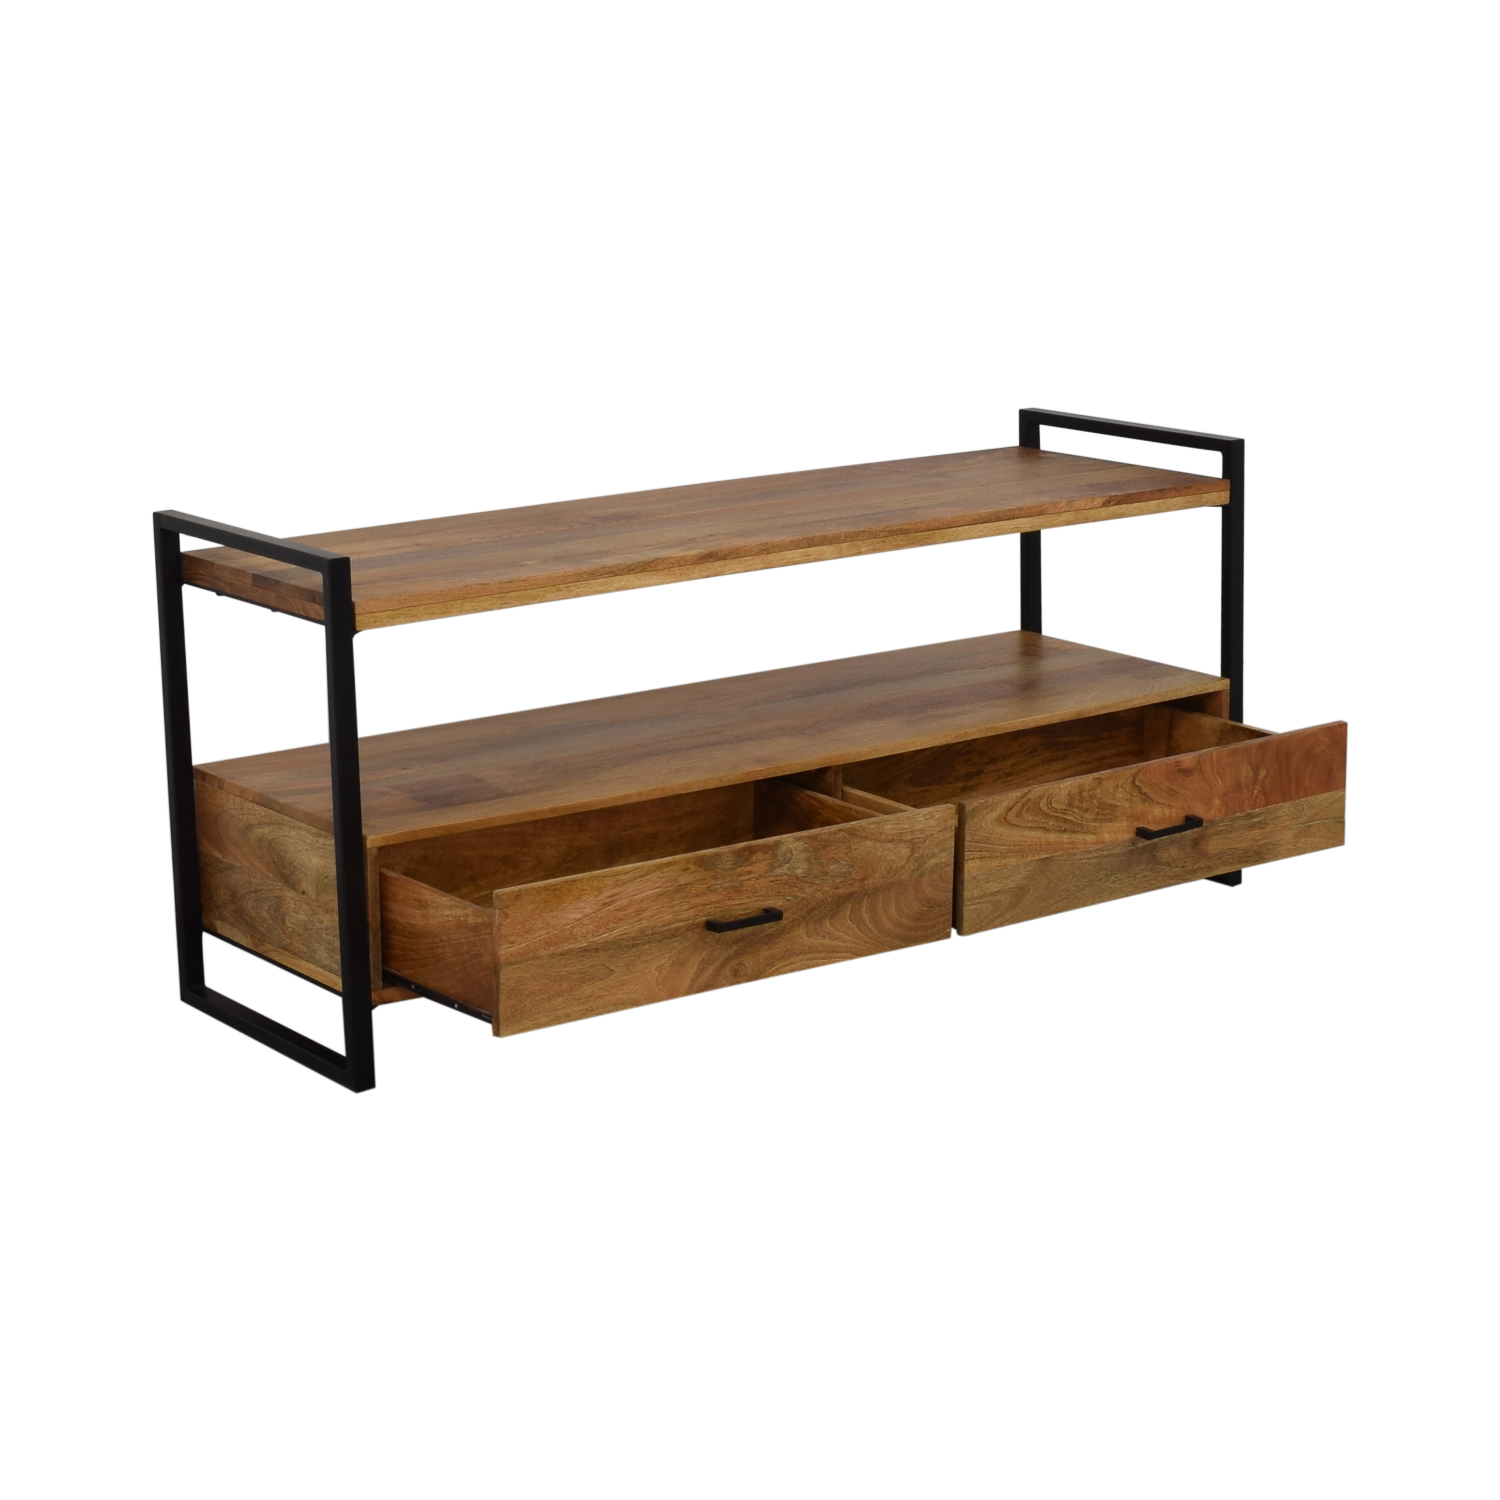 Simpli Home Industrial TV stand / Storage